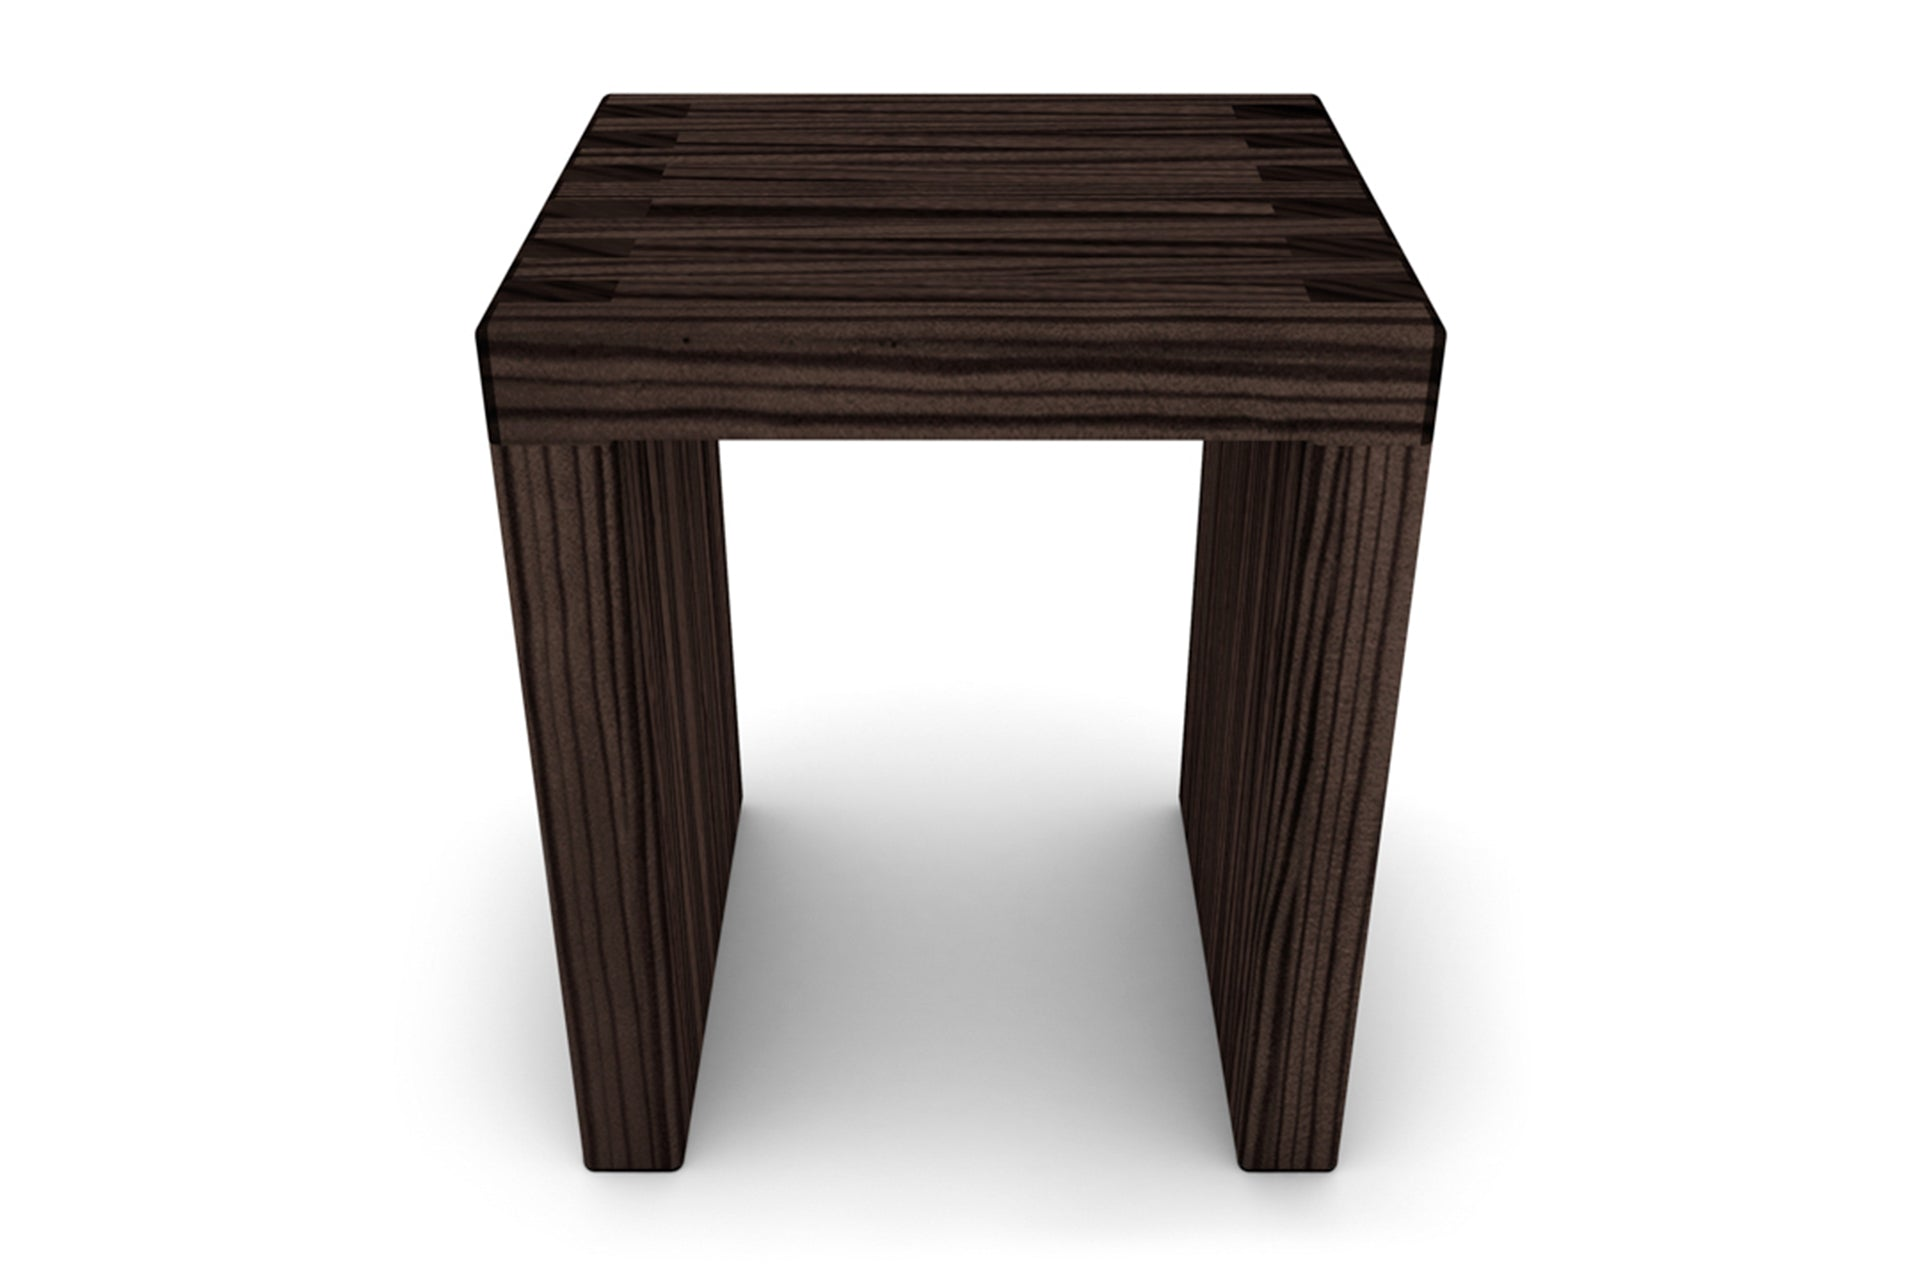 The Lilly Stool With Cityscape Legs